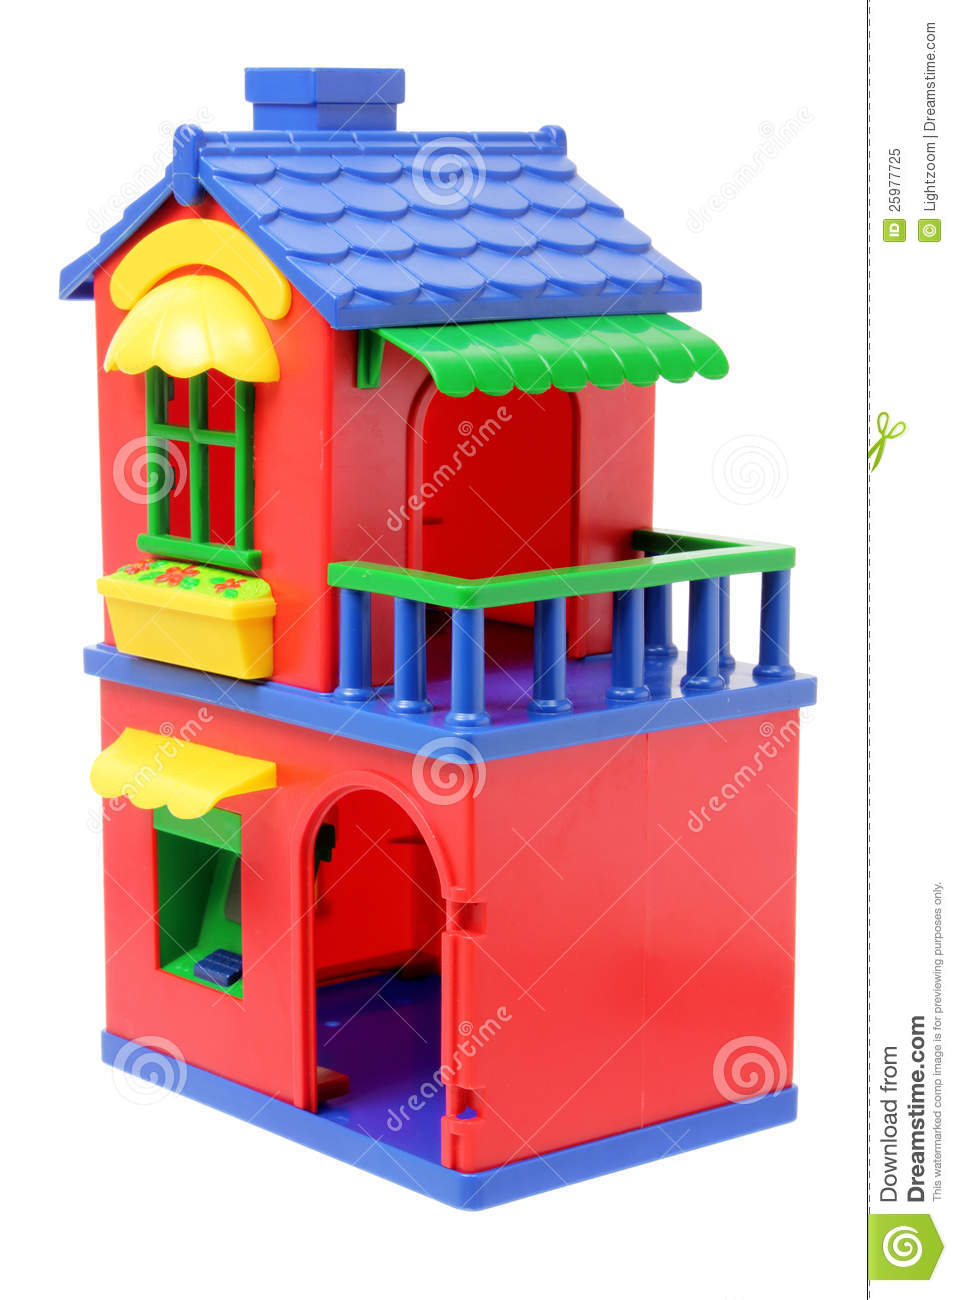 Toys For House : Toy house